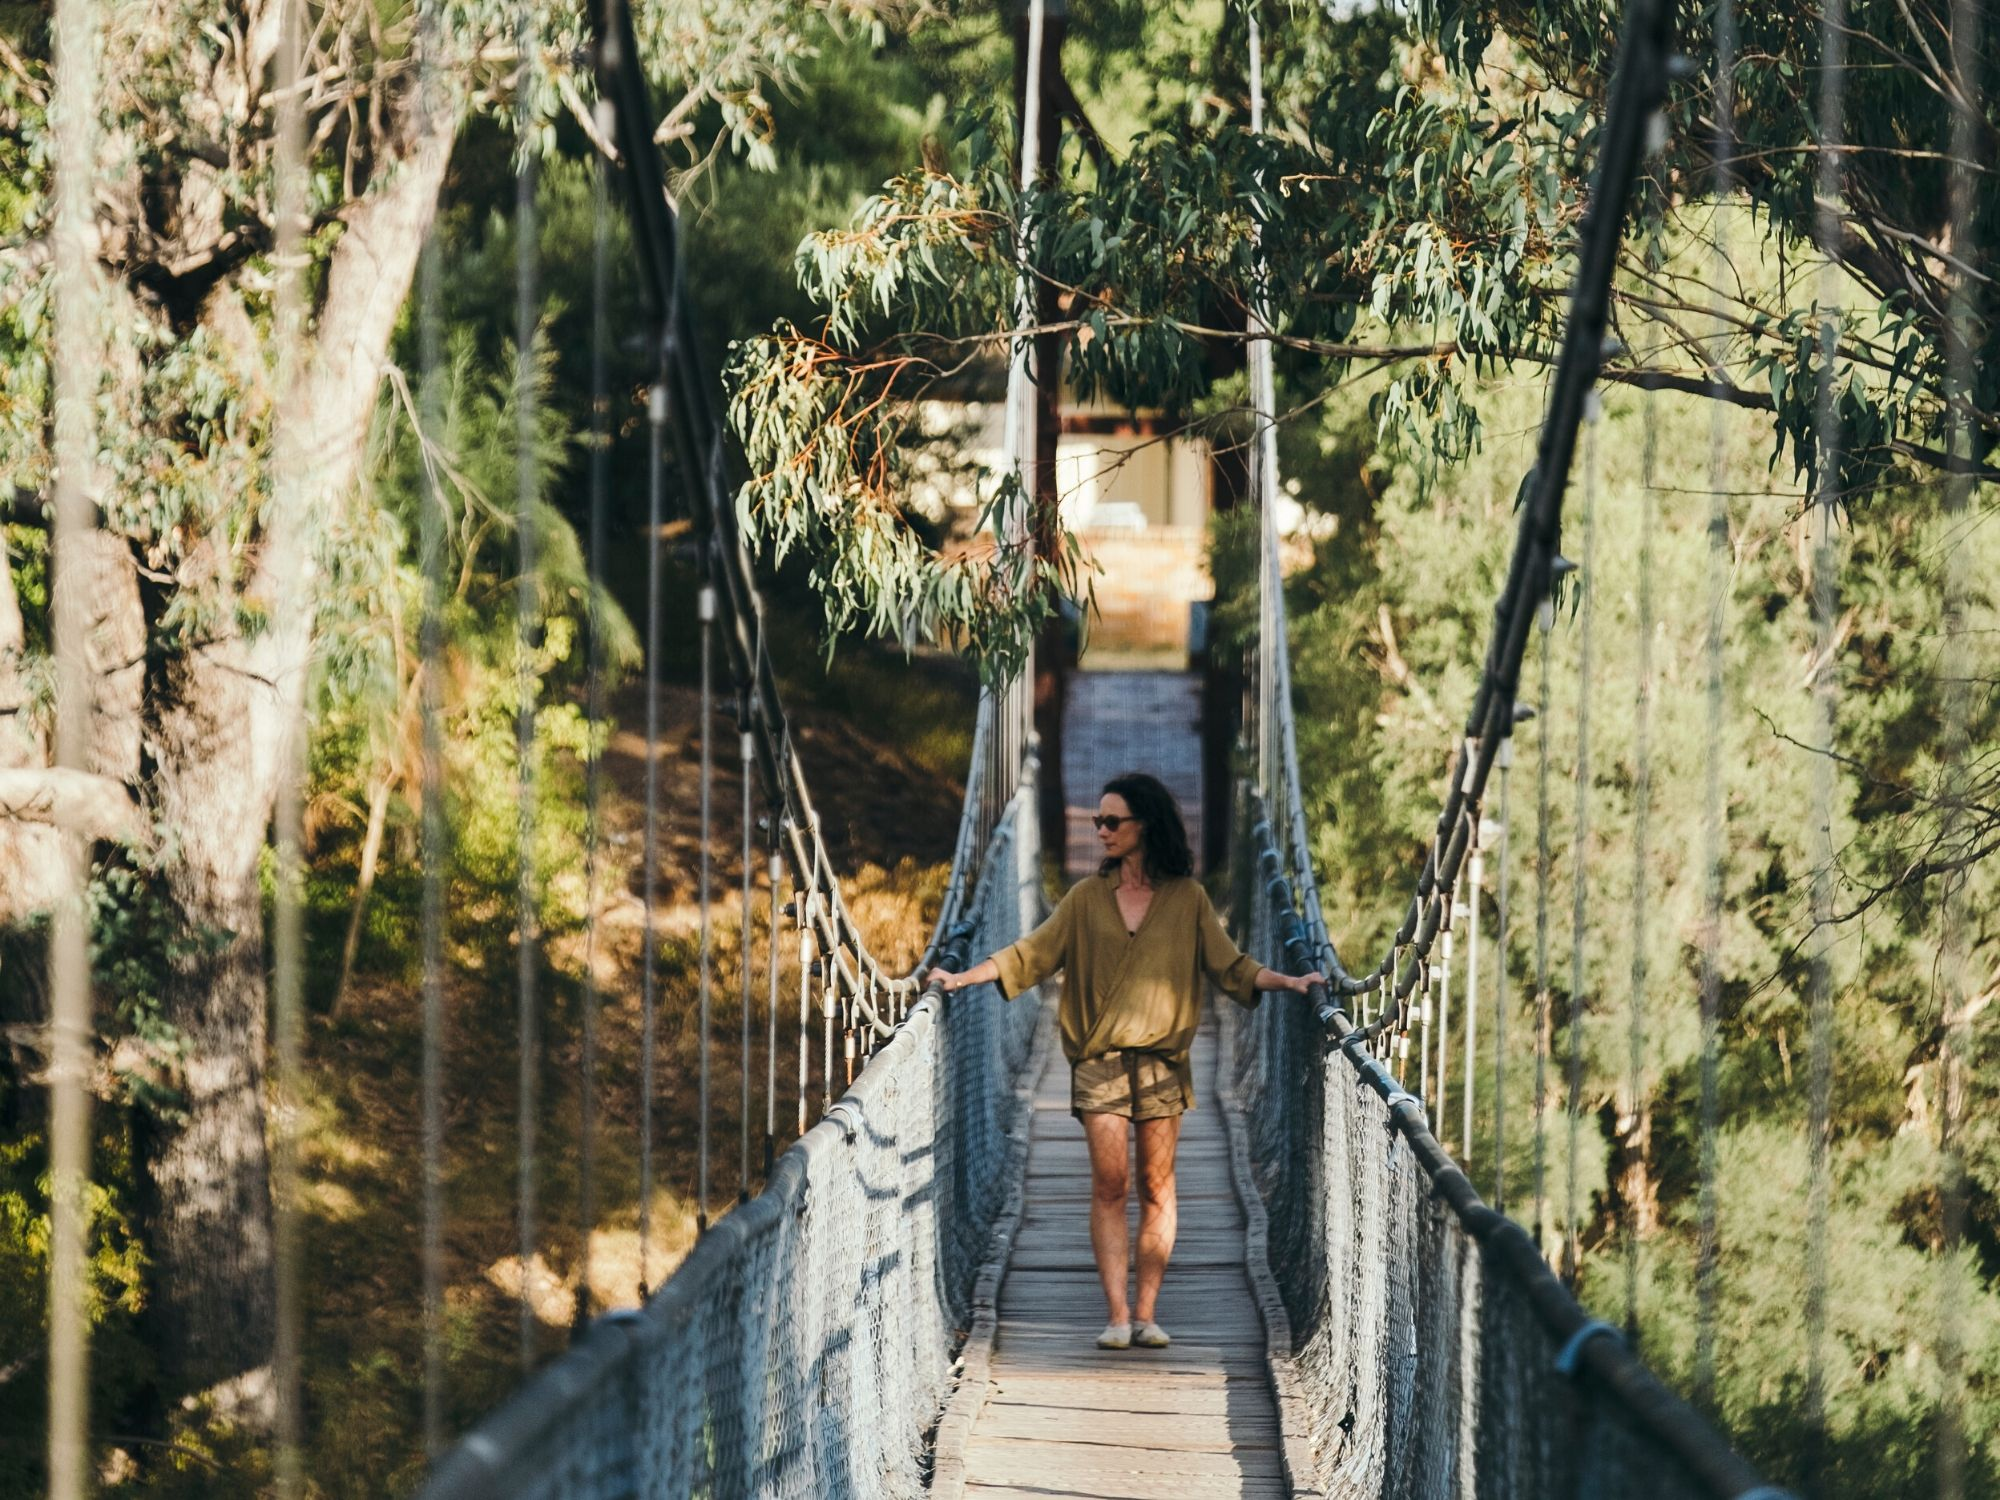 Pinjarra Heritage Walk - Suspension Bridge - Visit Mandurah